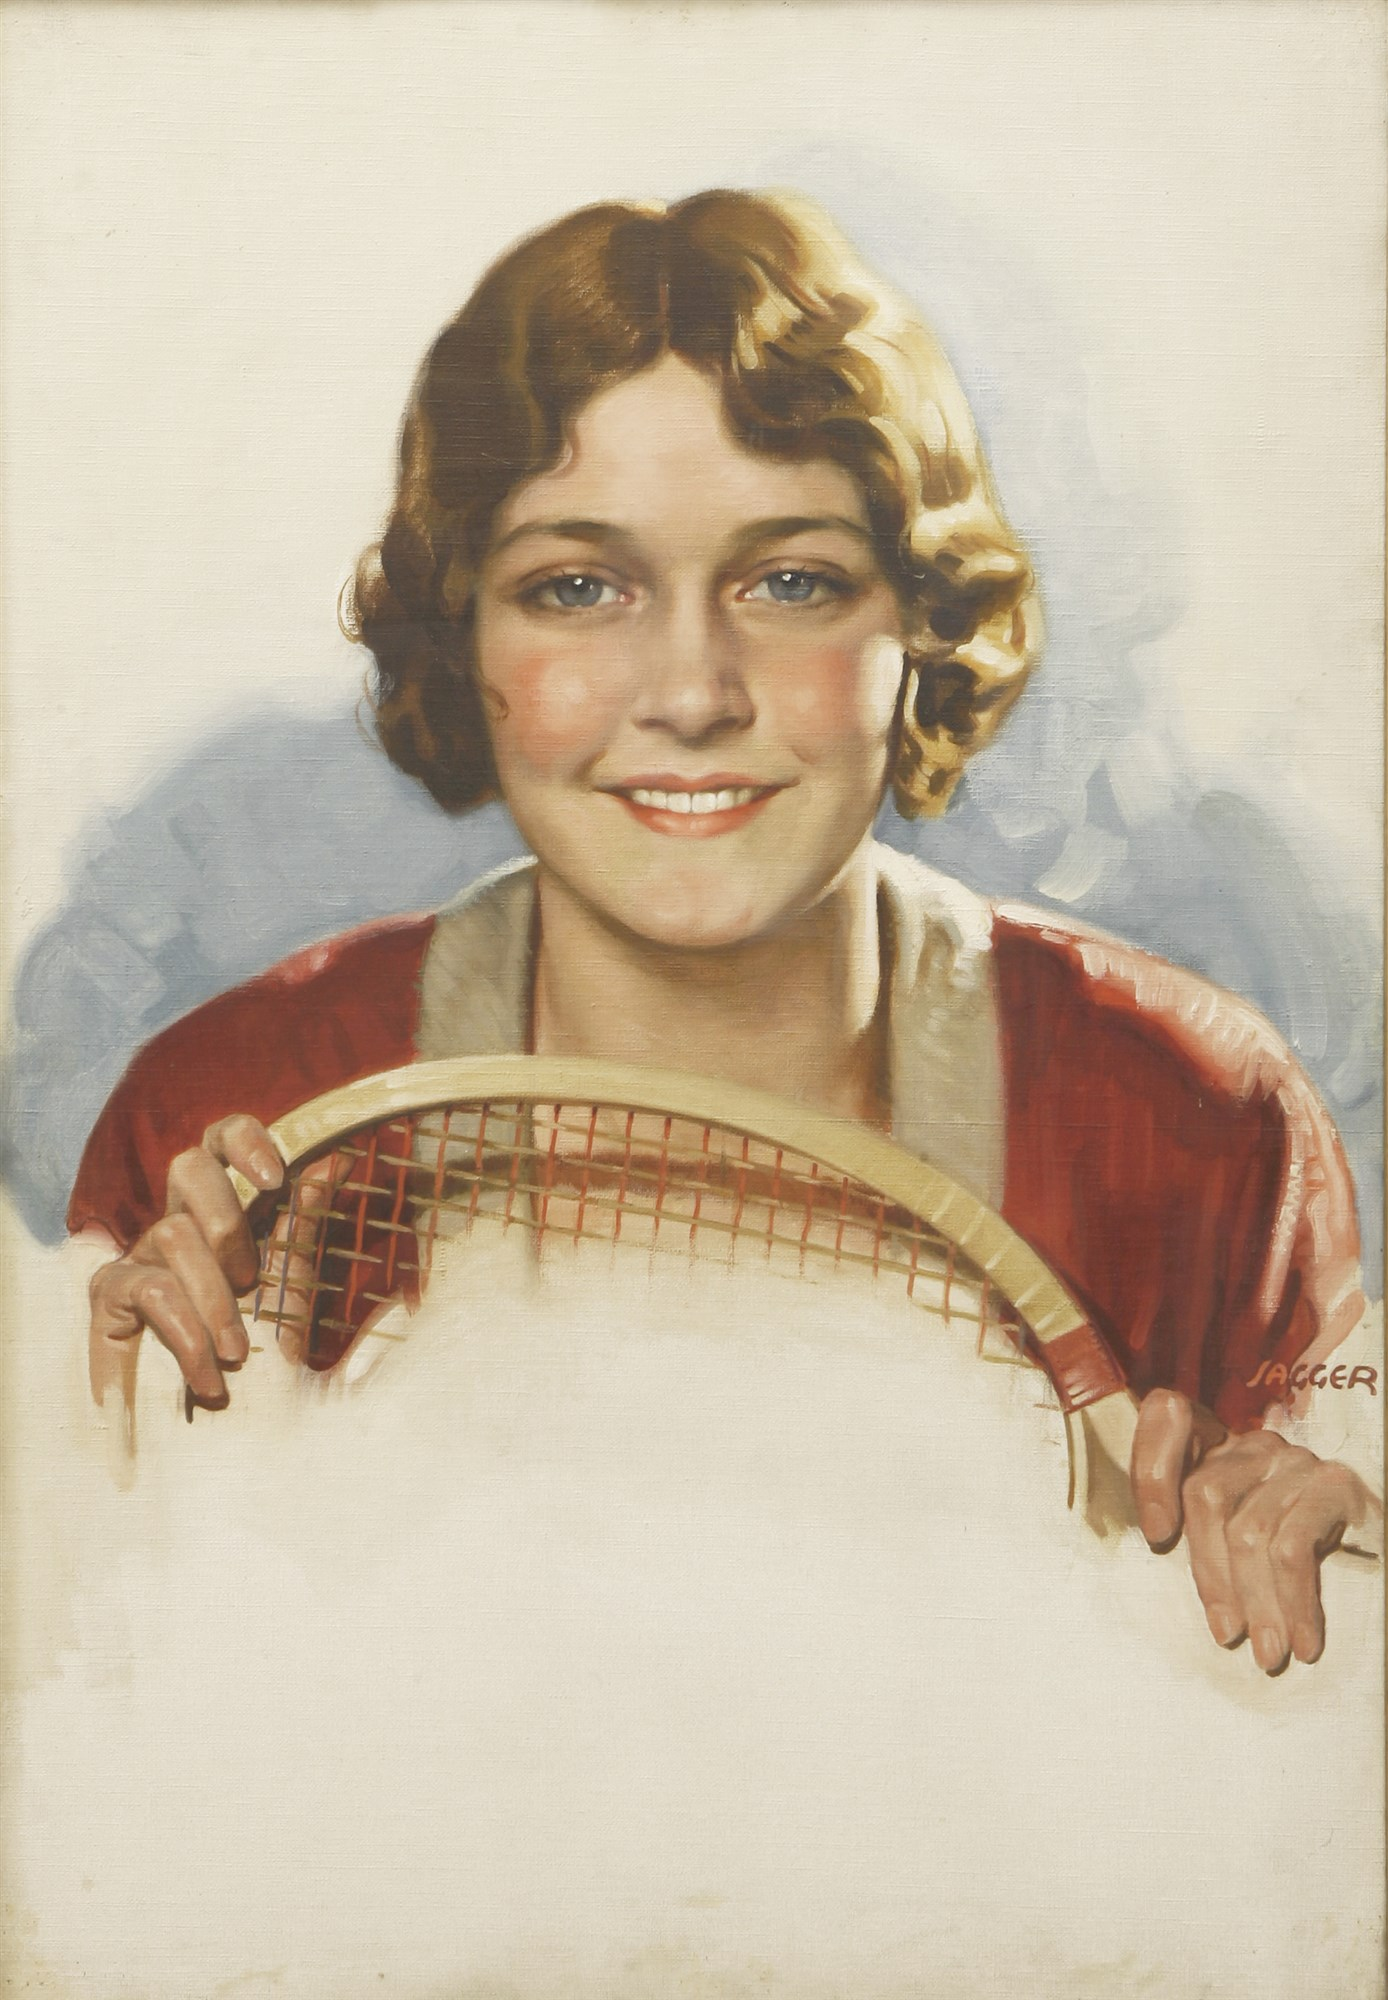 David Jagger (1891-1958), A LADY WITH A TENNIS RACQUET